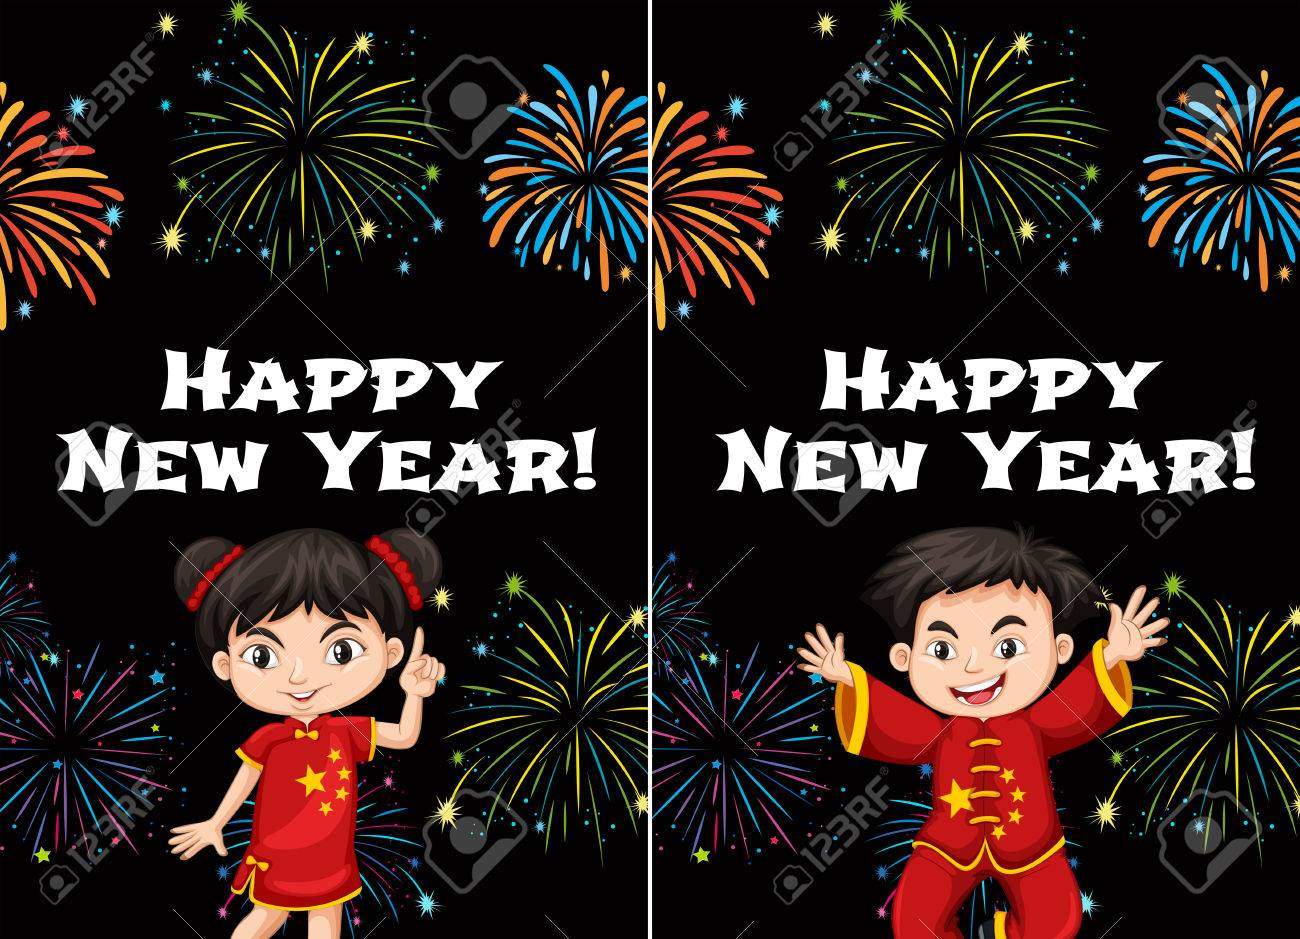 Chinese Kids And Happy New Year Card Templates Illustration Royalty